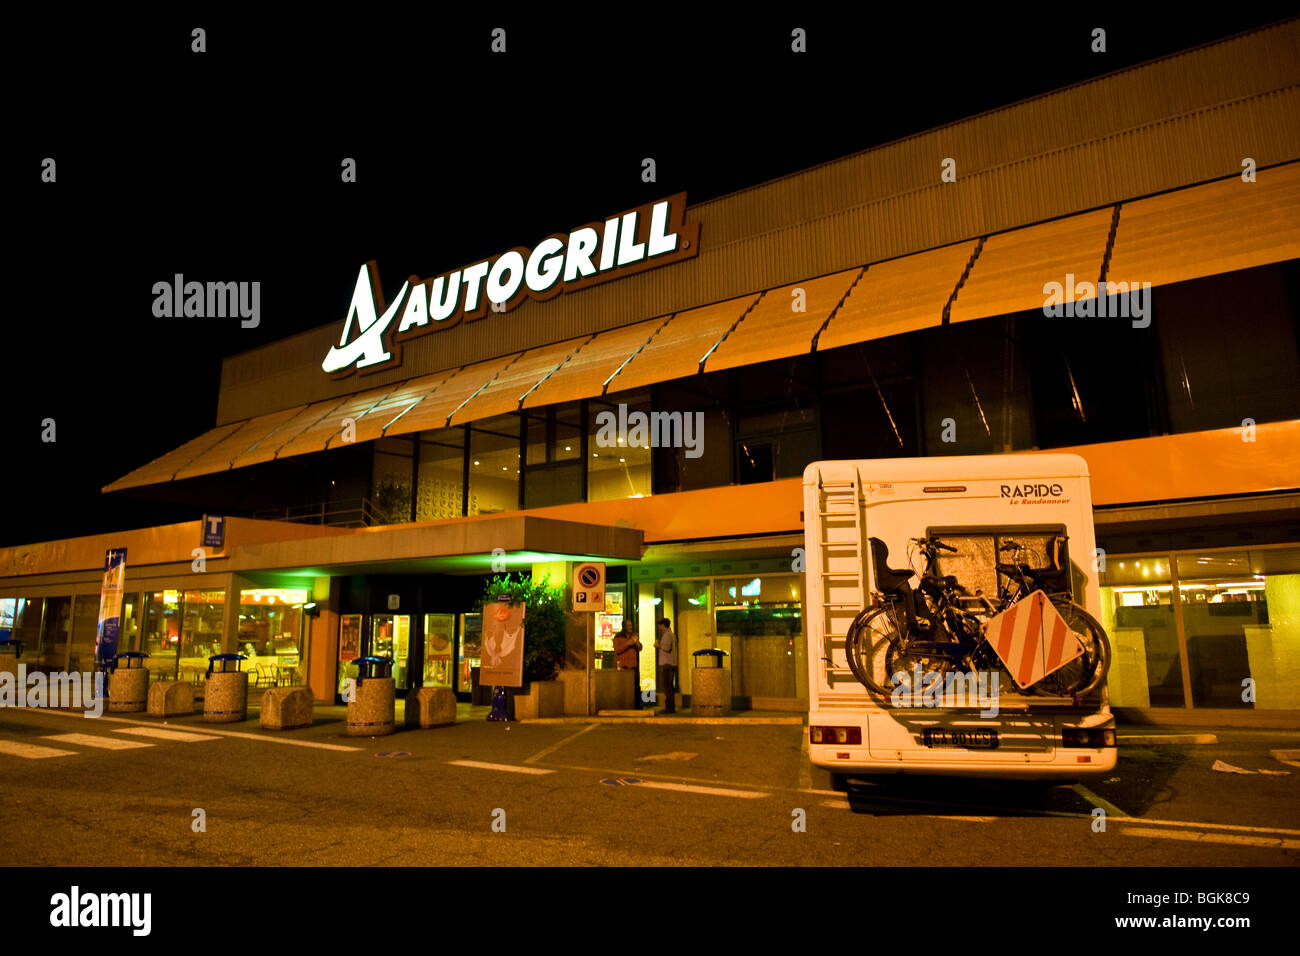 Highway, autogrill - Stock Image